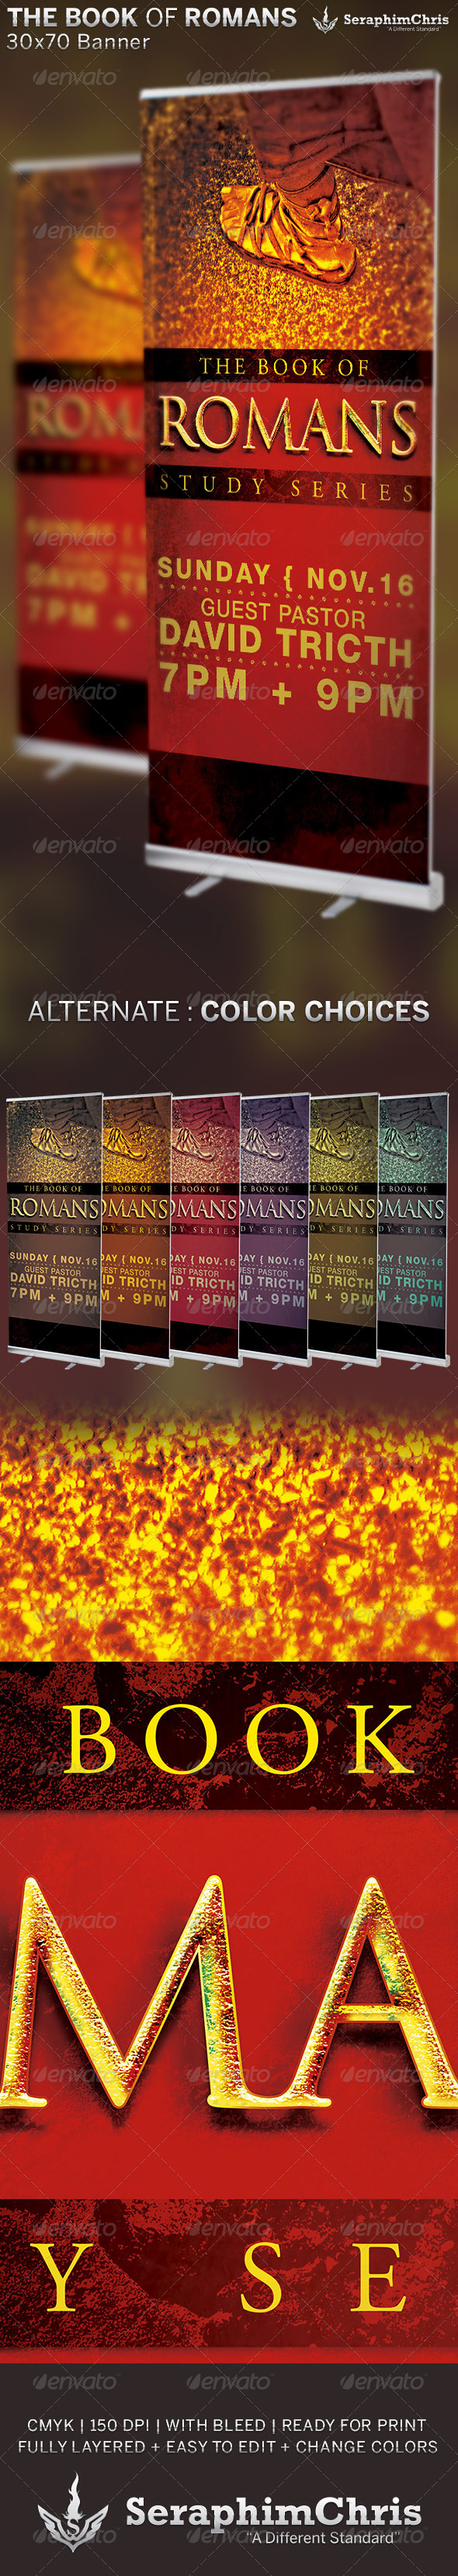 The Book of Romans: Church Banner Template - Signage Print Templates